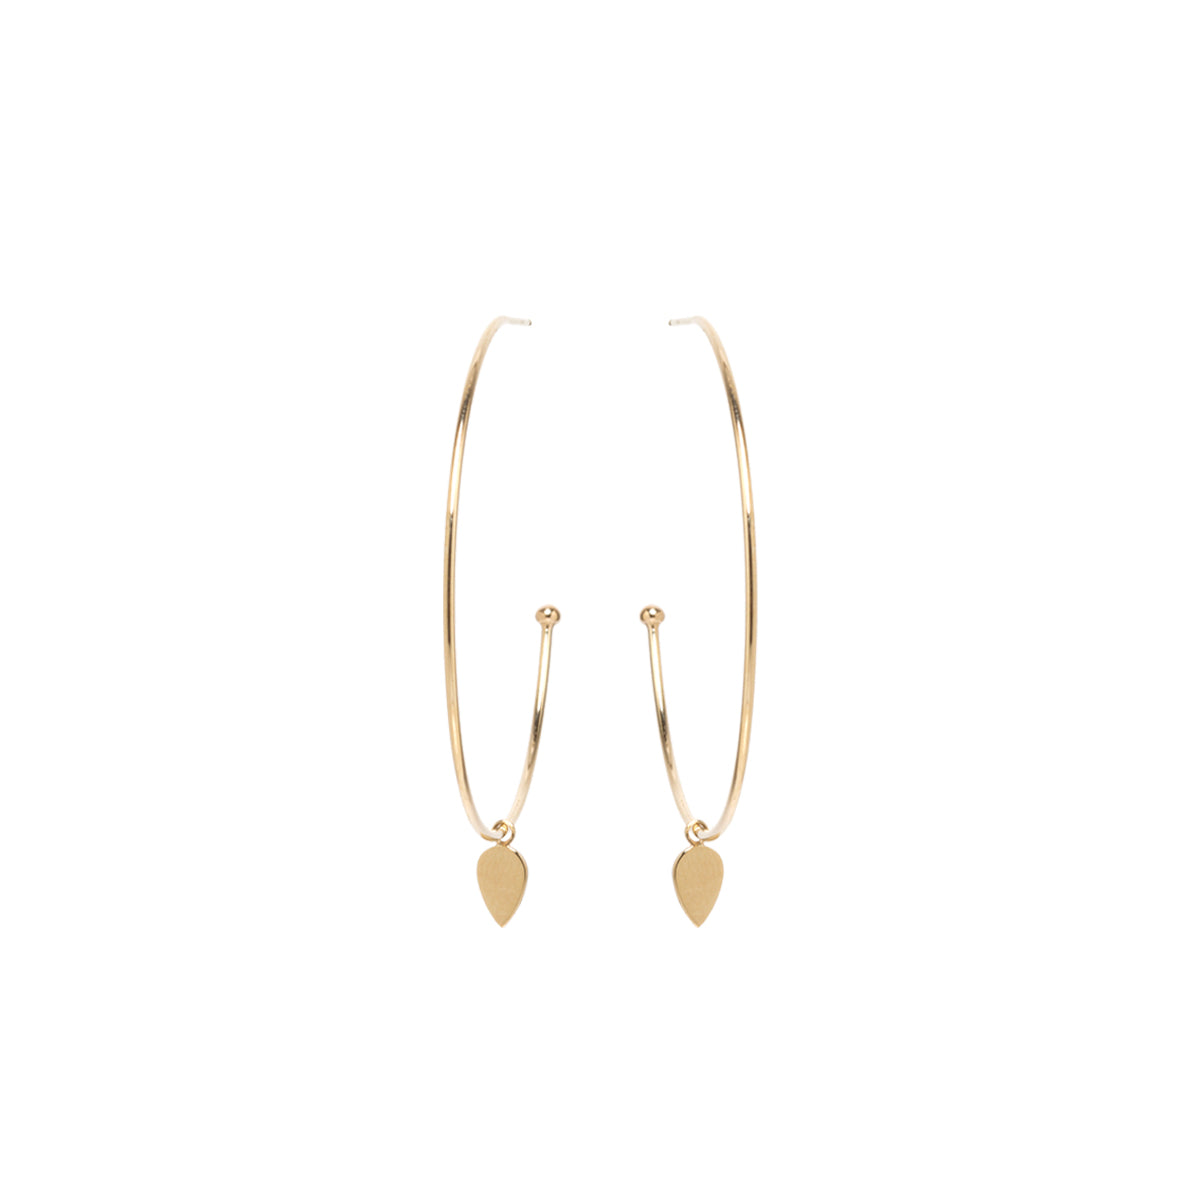 Zoë Chicco 14kt Yellow Gold Medium Hoop Earrings with Dangling Itty Bitty Tear Charms